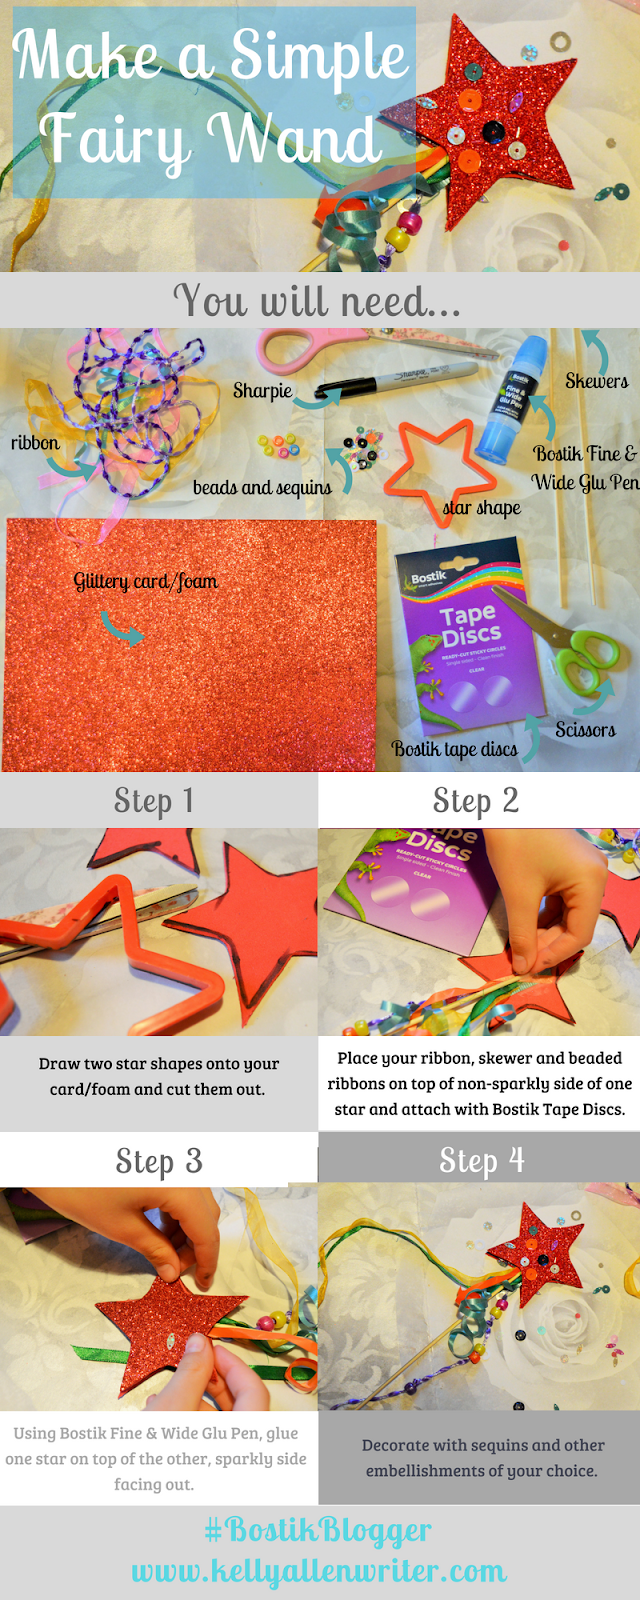 Make a Magical Fairy Wand With Bostik! #BostikBlogger